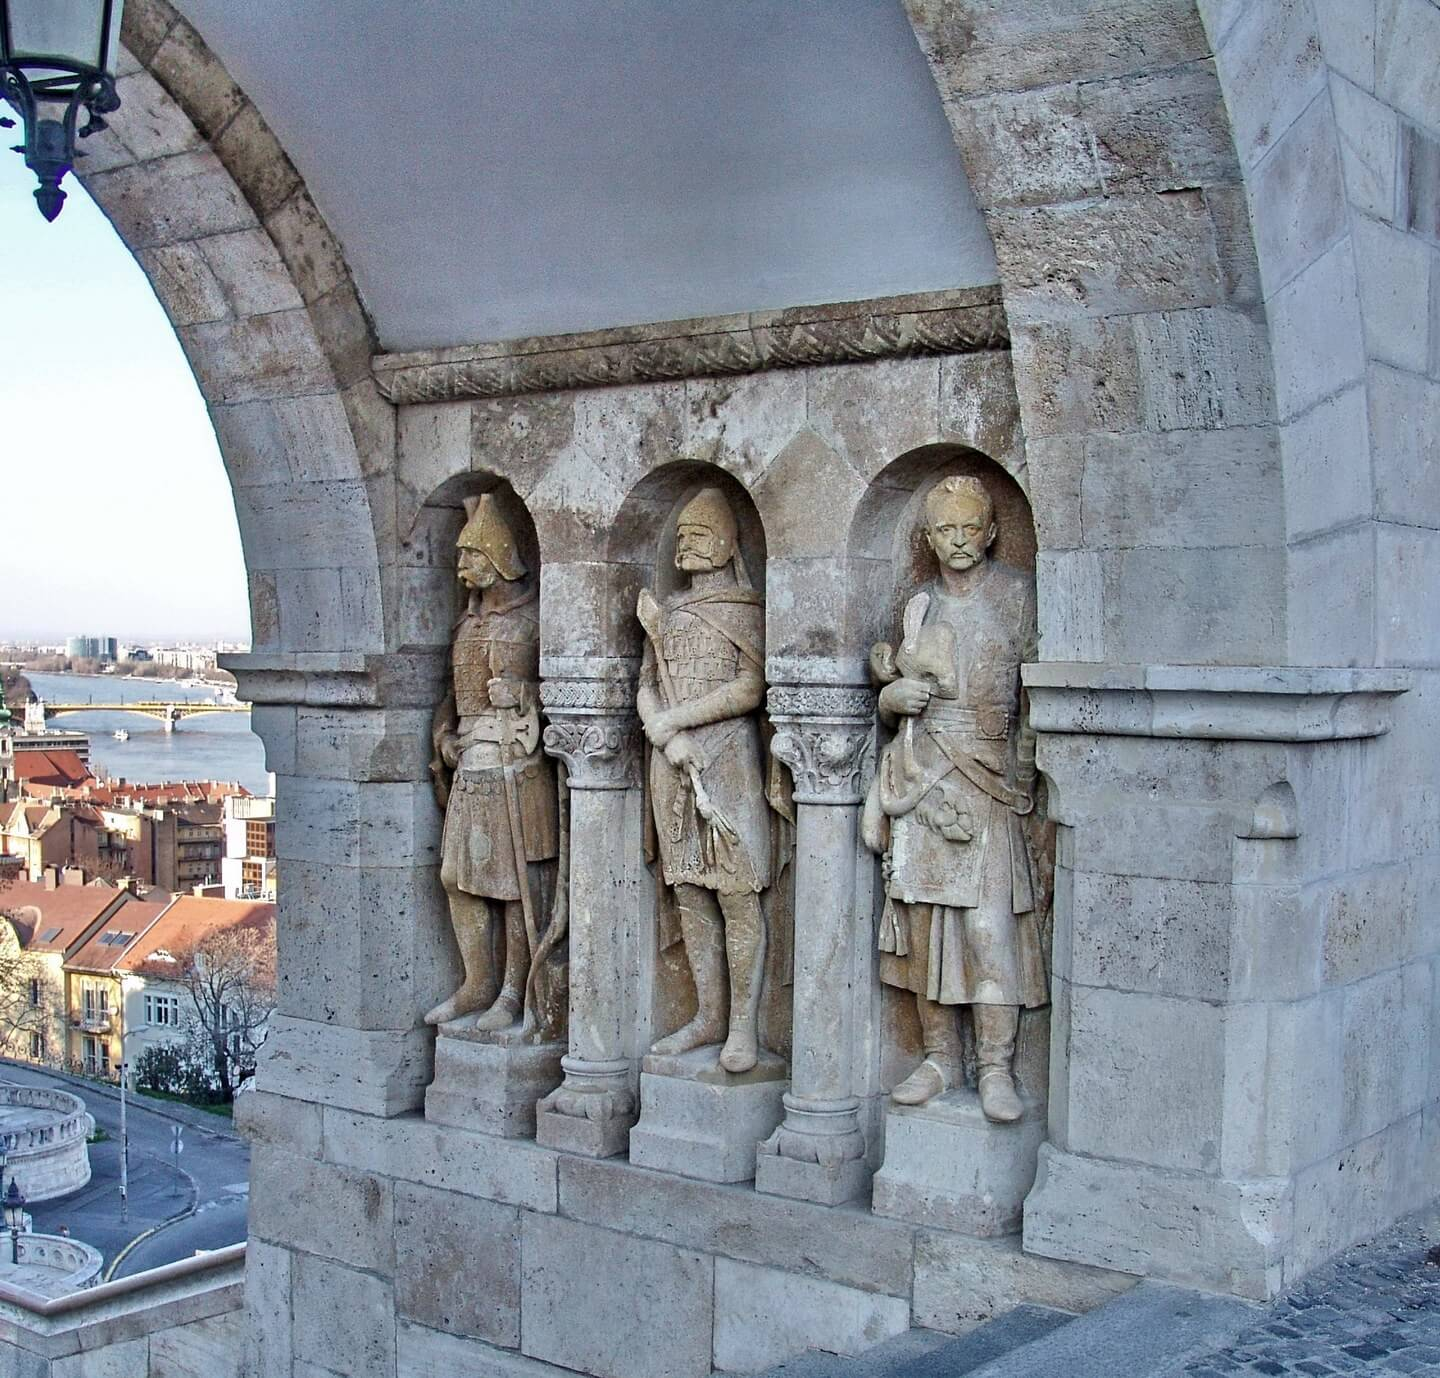 Stand with statues in the Royal Palace complex in Budapest, Hungary